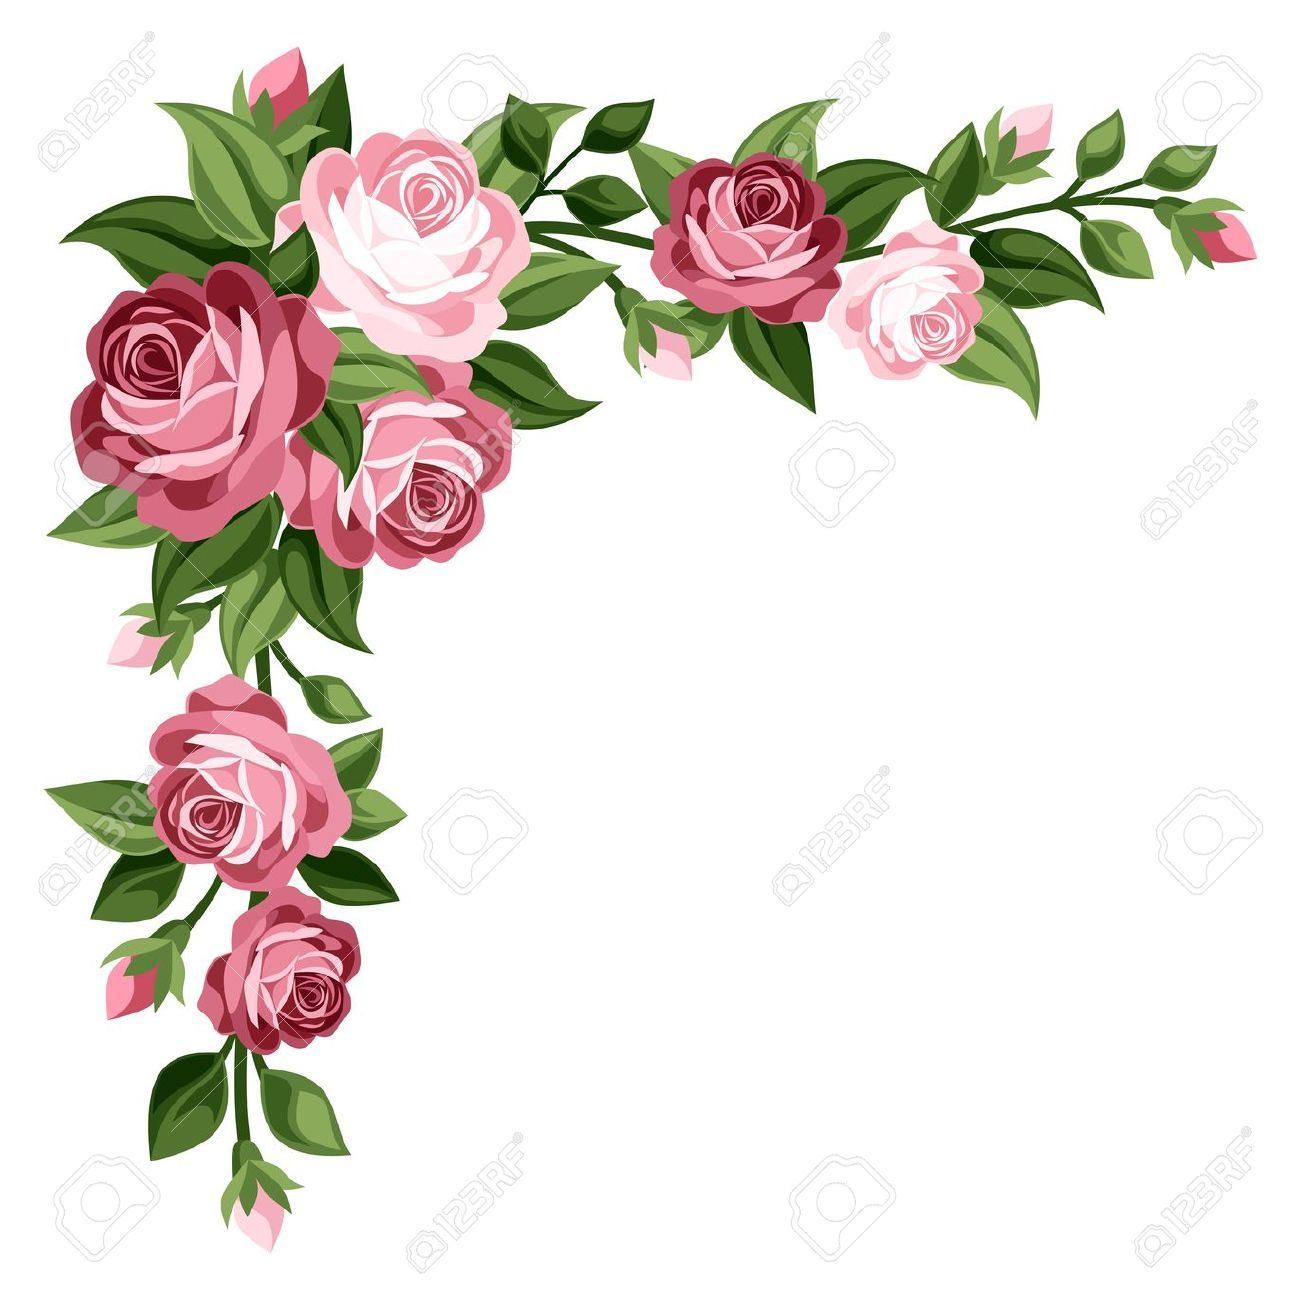 rose flower border clipart tags pinterest rose flower and flowers rh pinterest com clip art flower borders for funeral programs clip art flower borders for adults